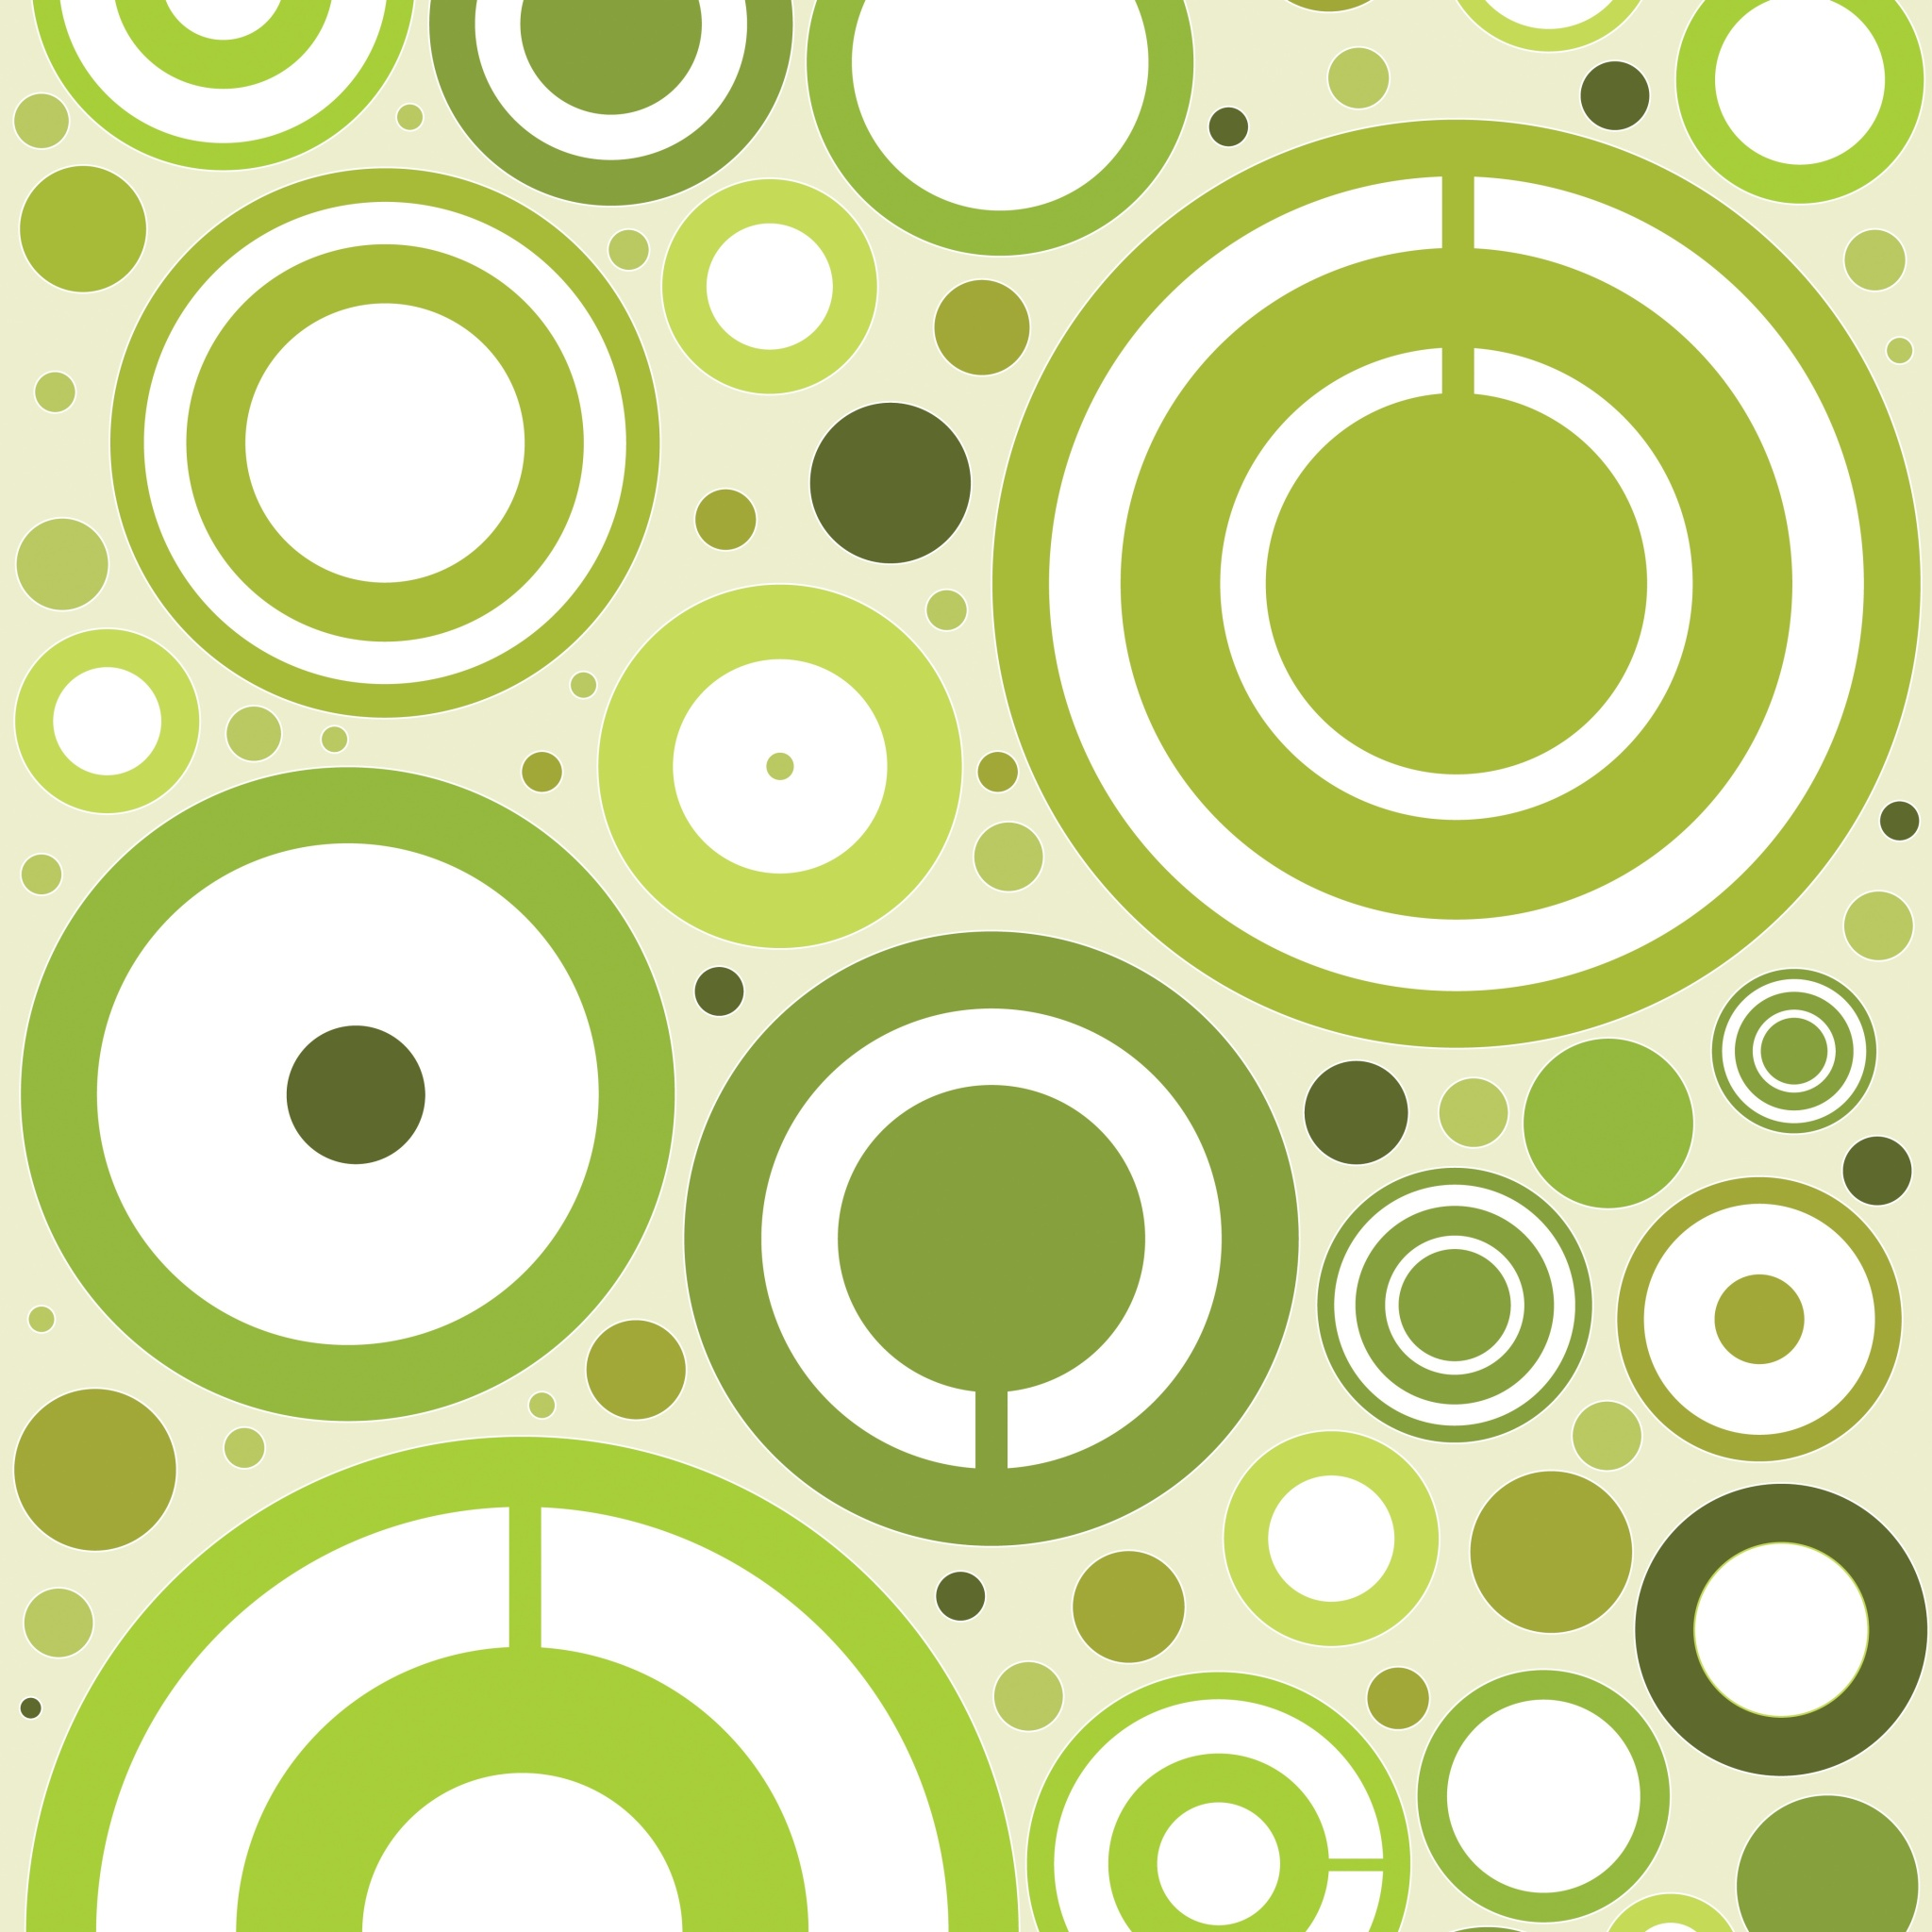 abstract funky pattern wallpaper - photo #17